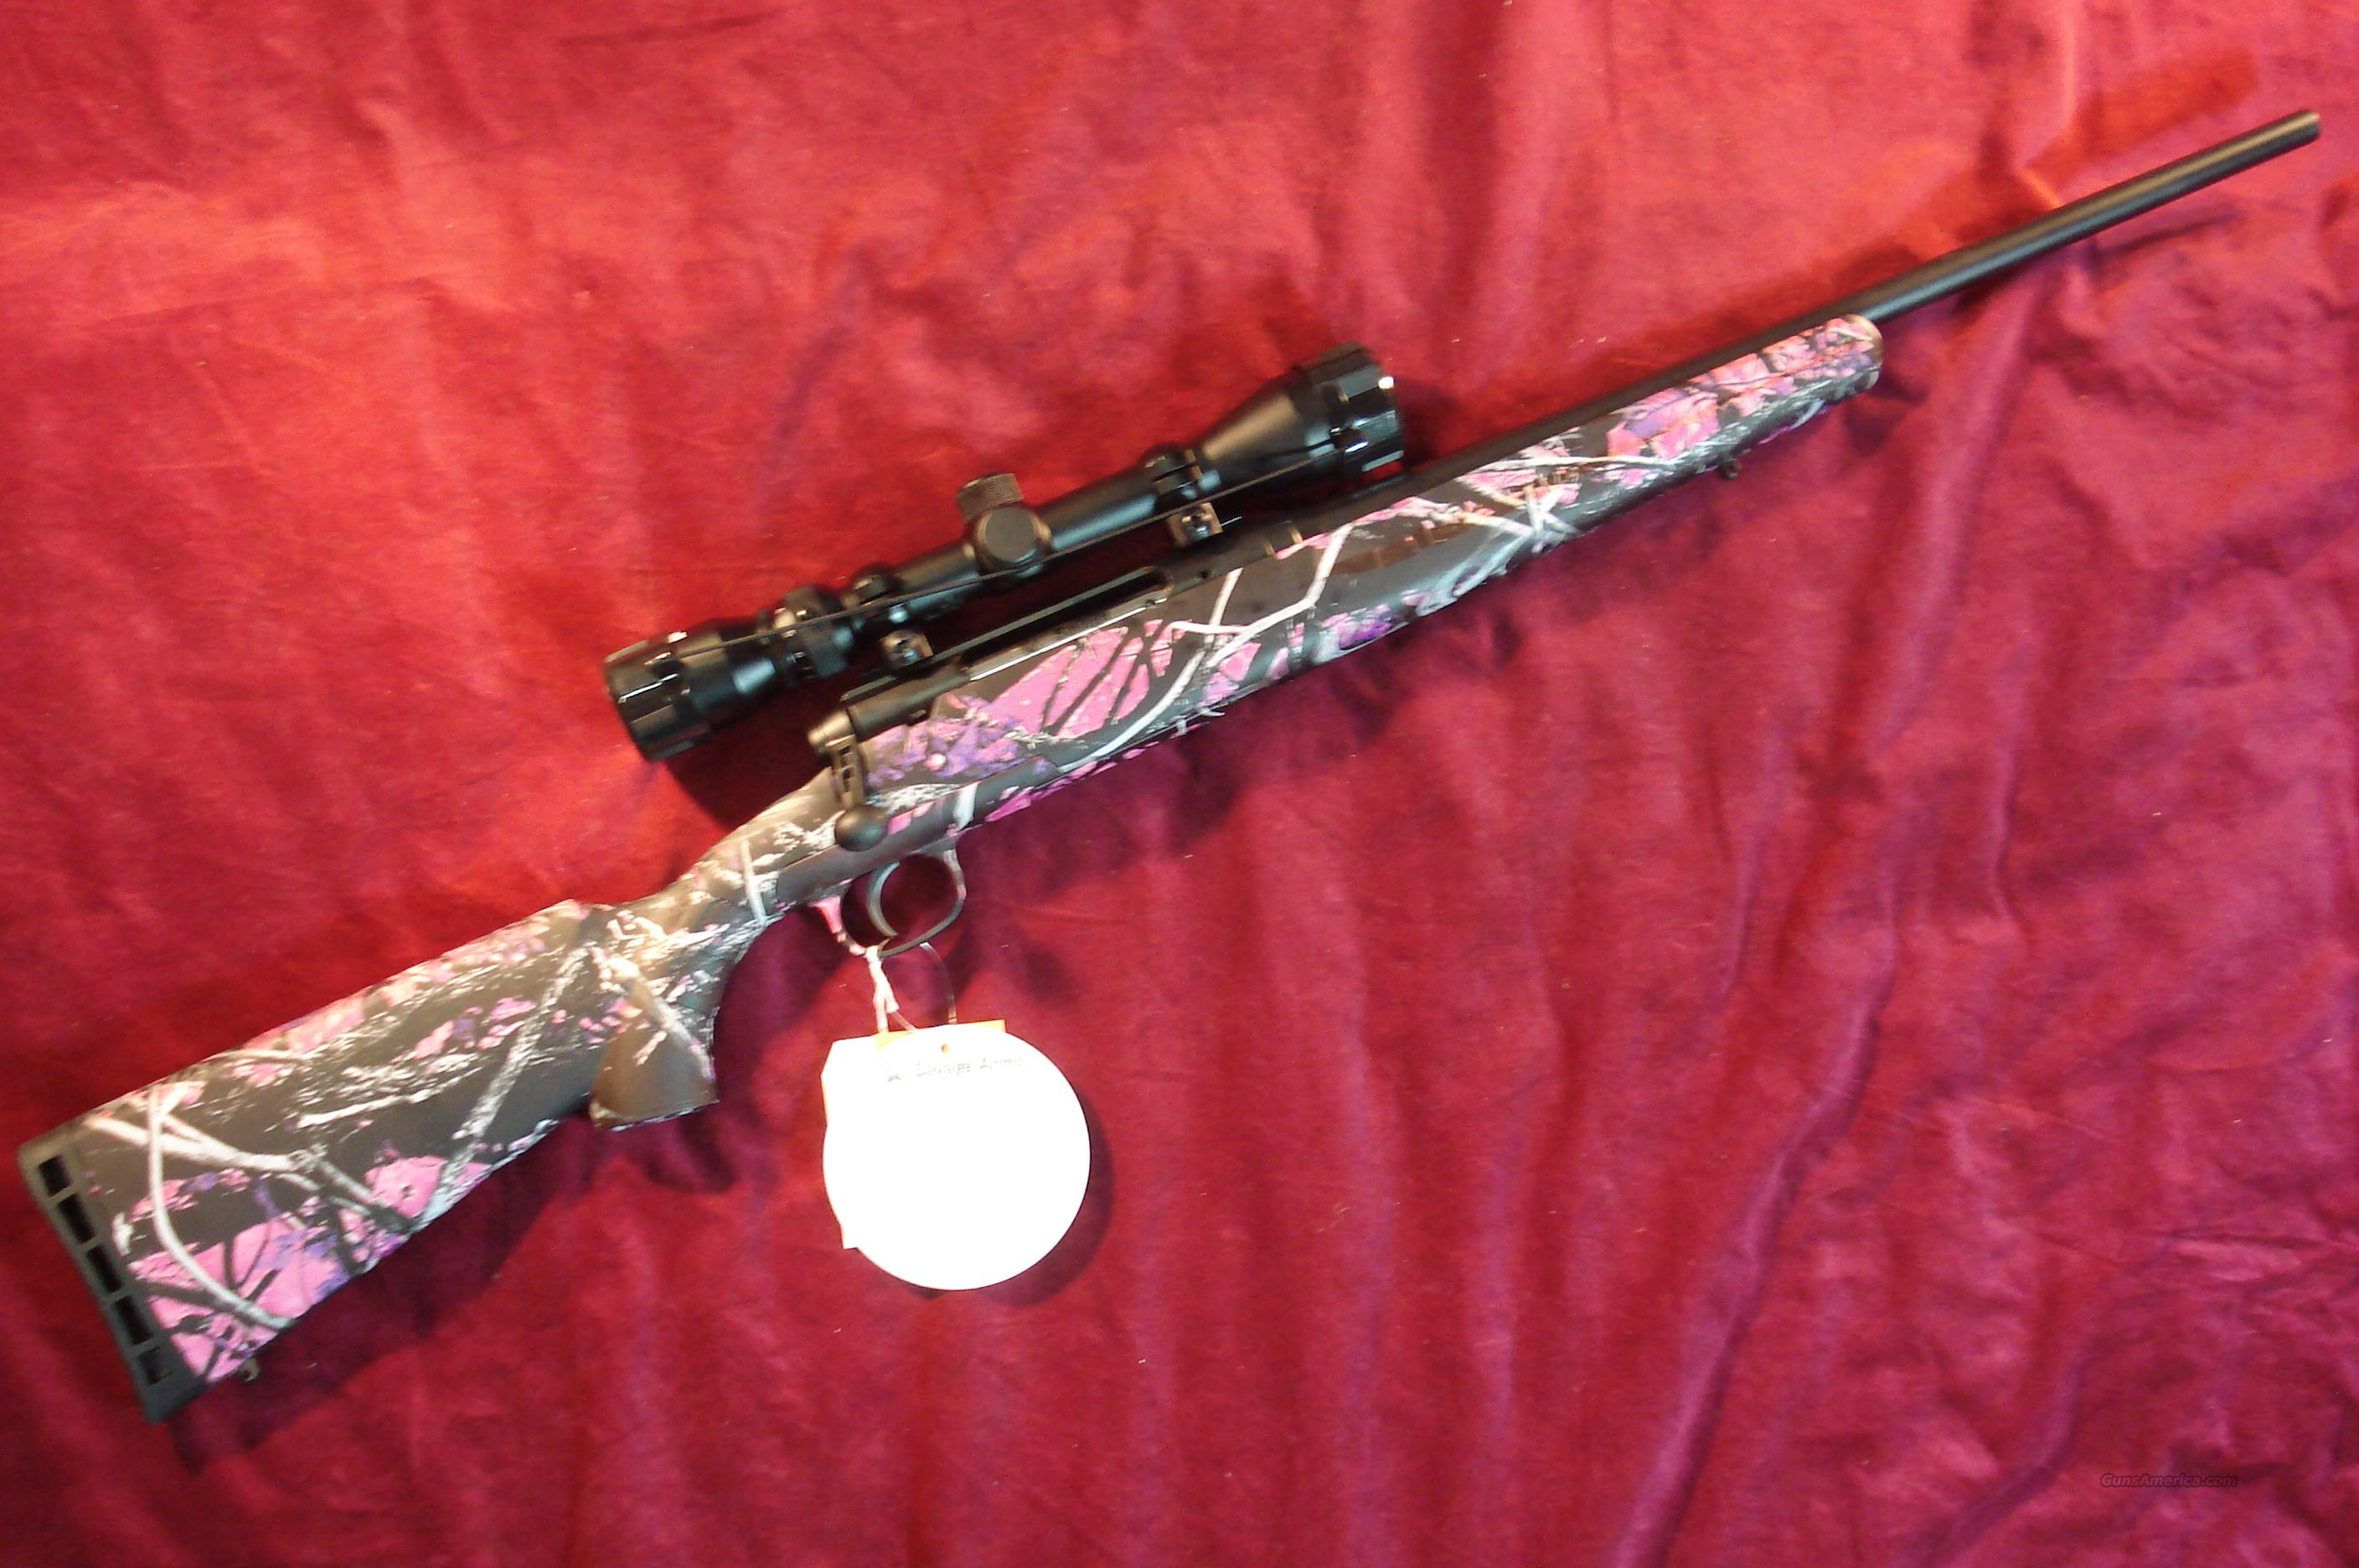 SAVAGE AXIS XP 243 CAL MUDDY GIRL CAMO W/SCOPE NEW  Guns > Rifles > Savage Rifles > Standard Bolt Action > Sporting